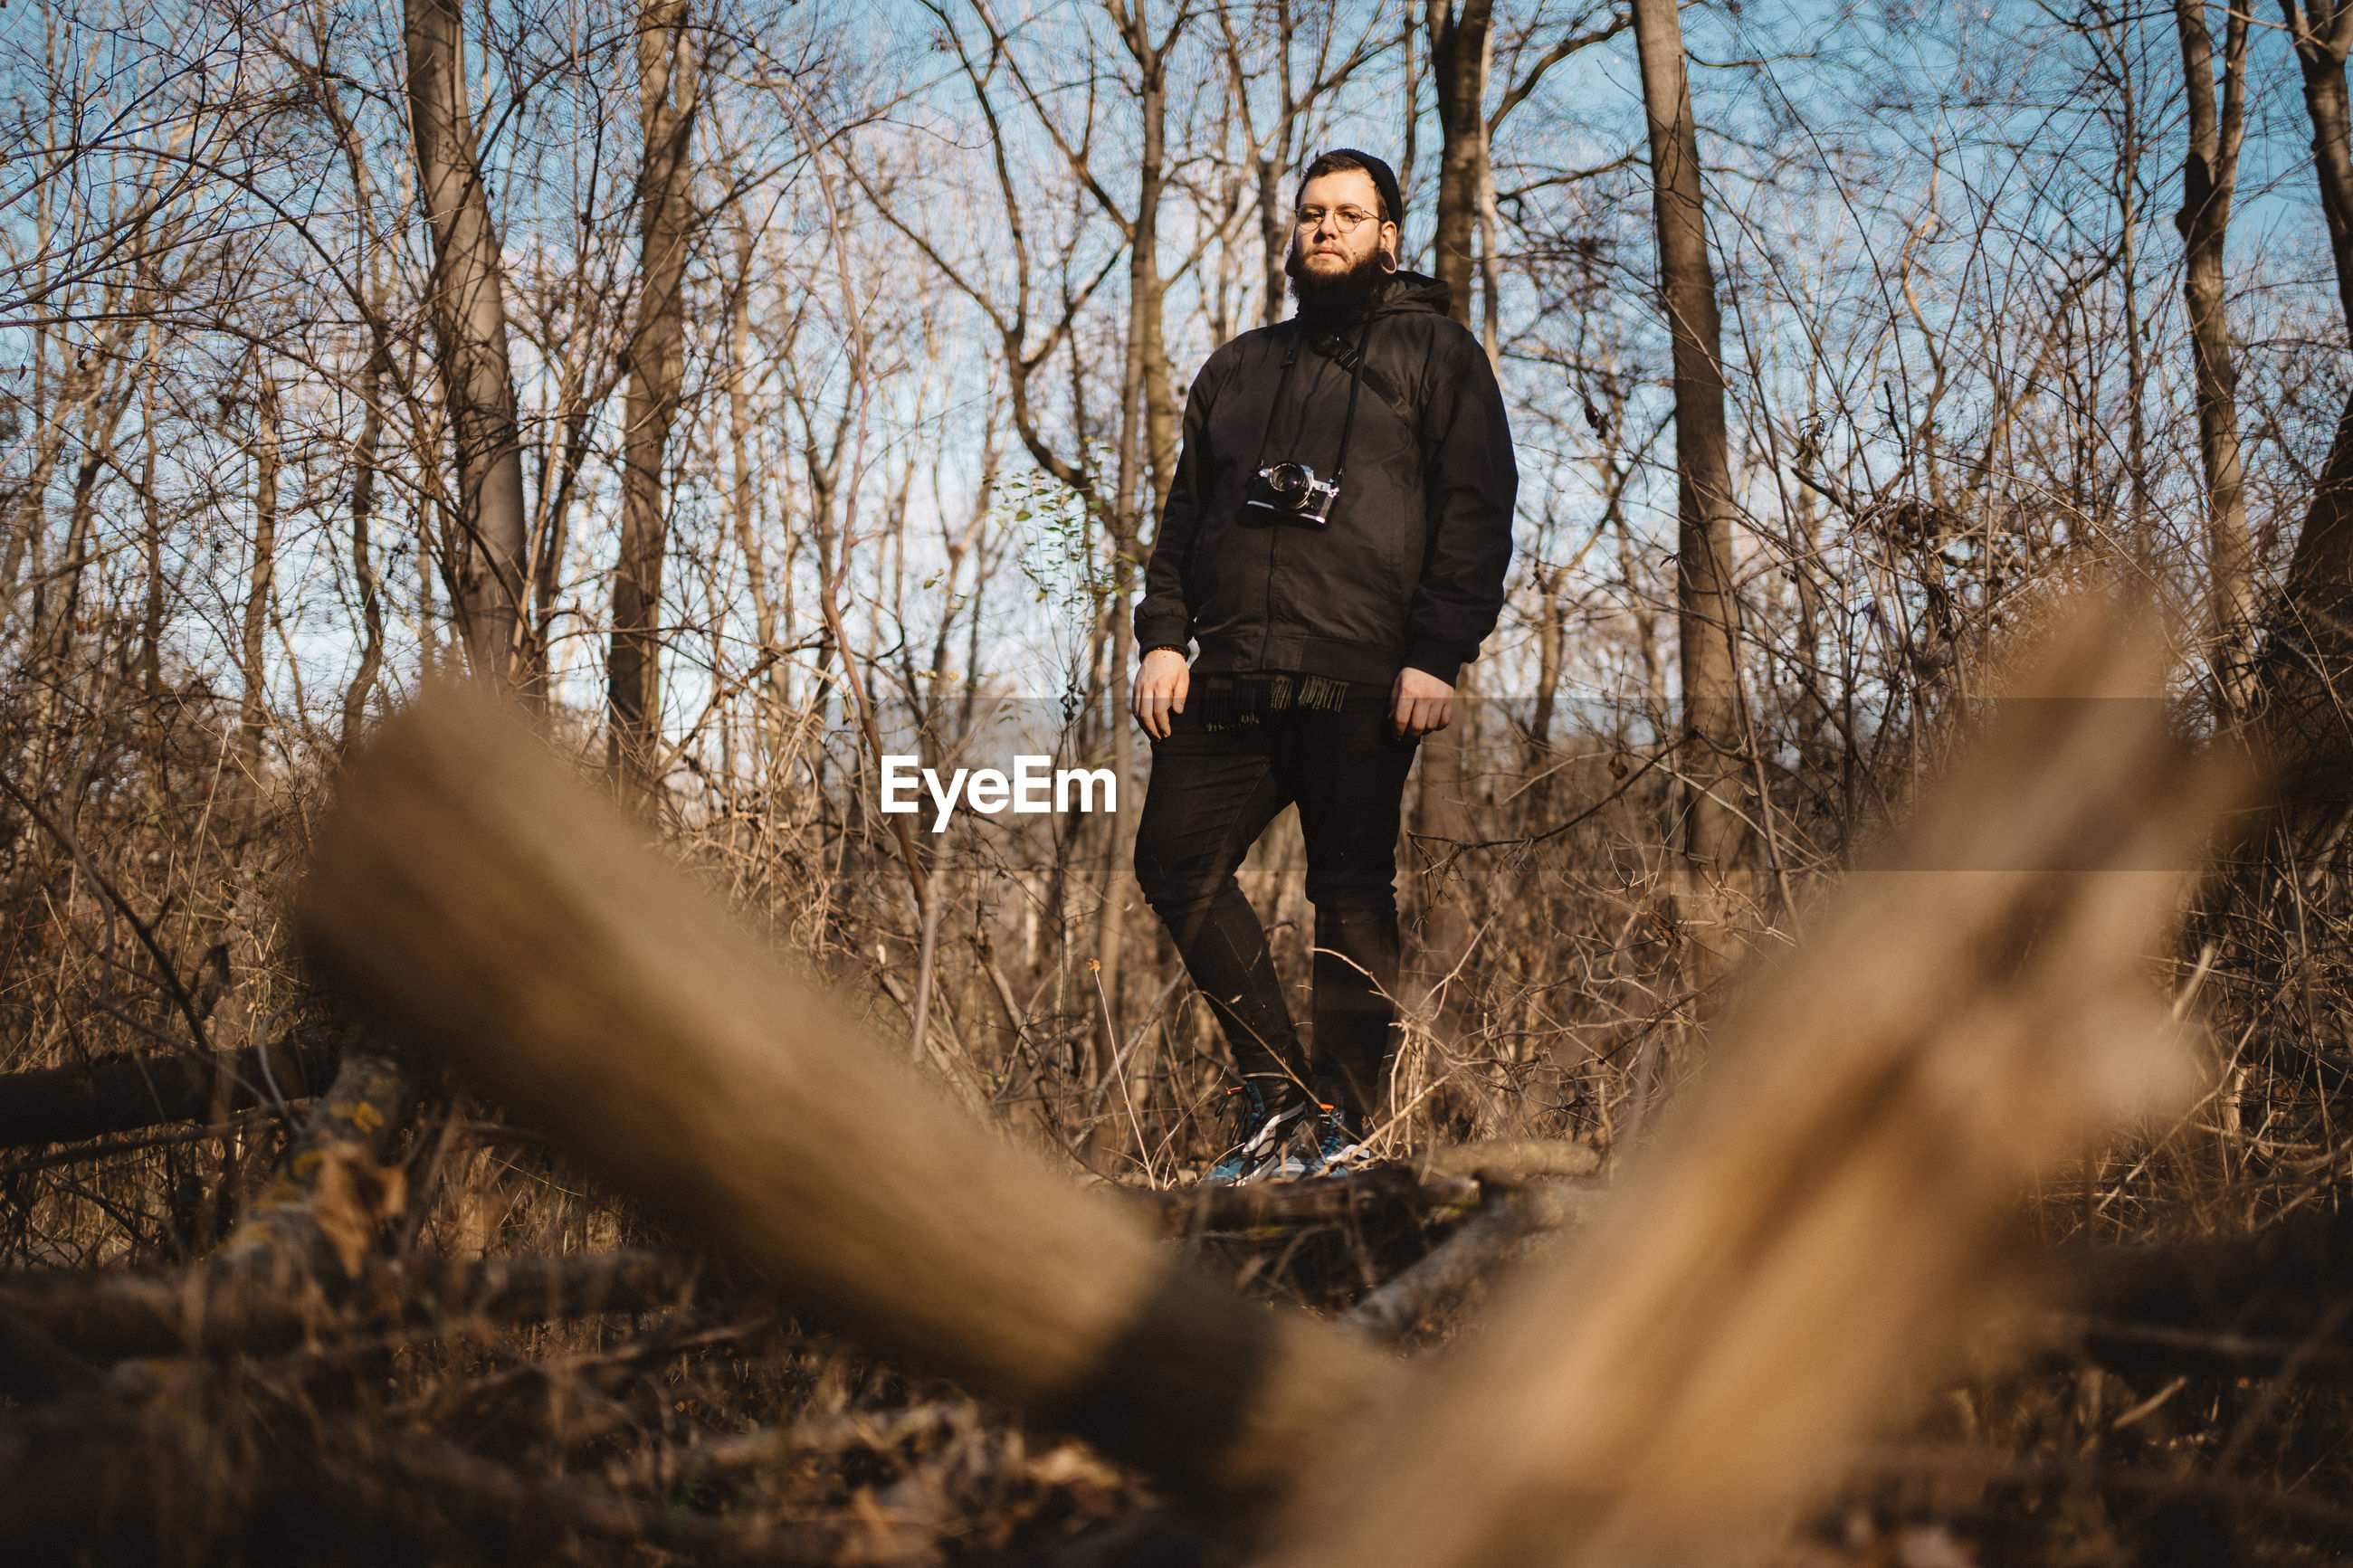 A young bearded man posing in an all black casual outfit on a tree trunk